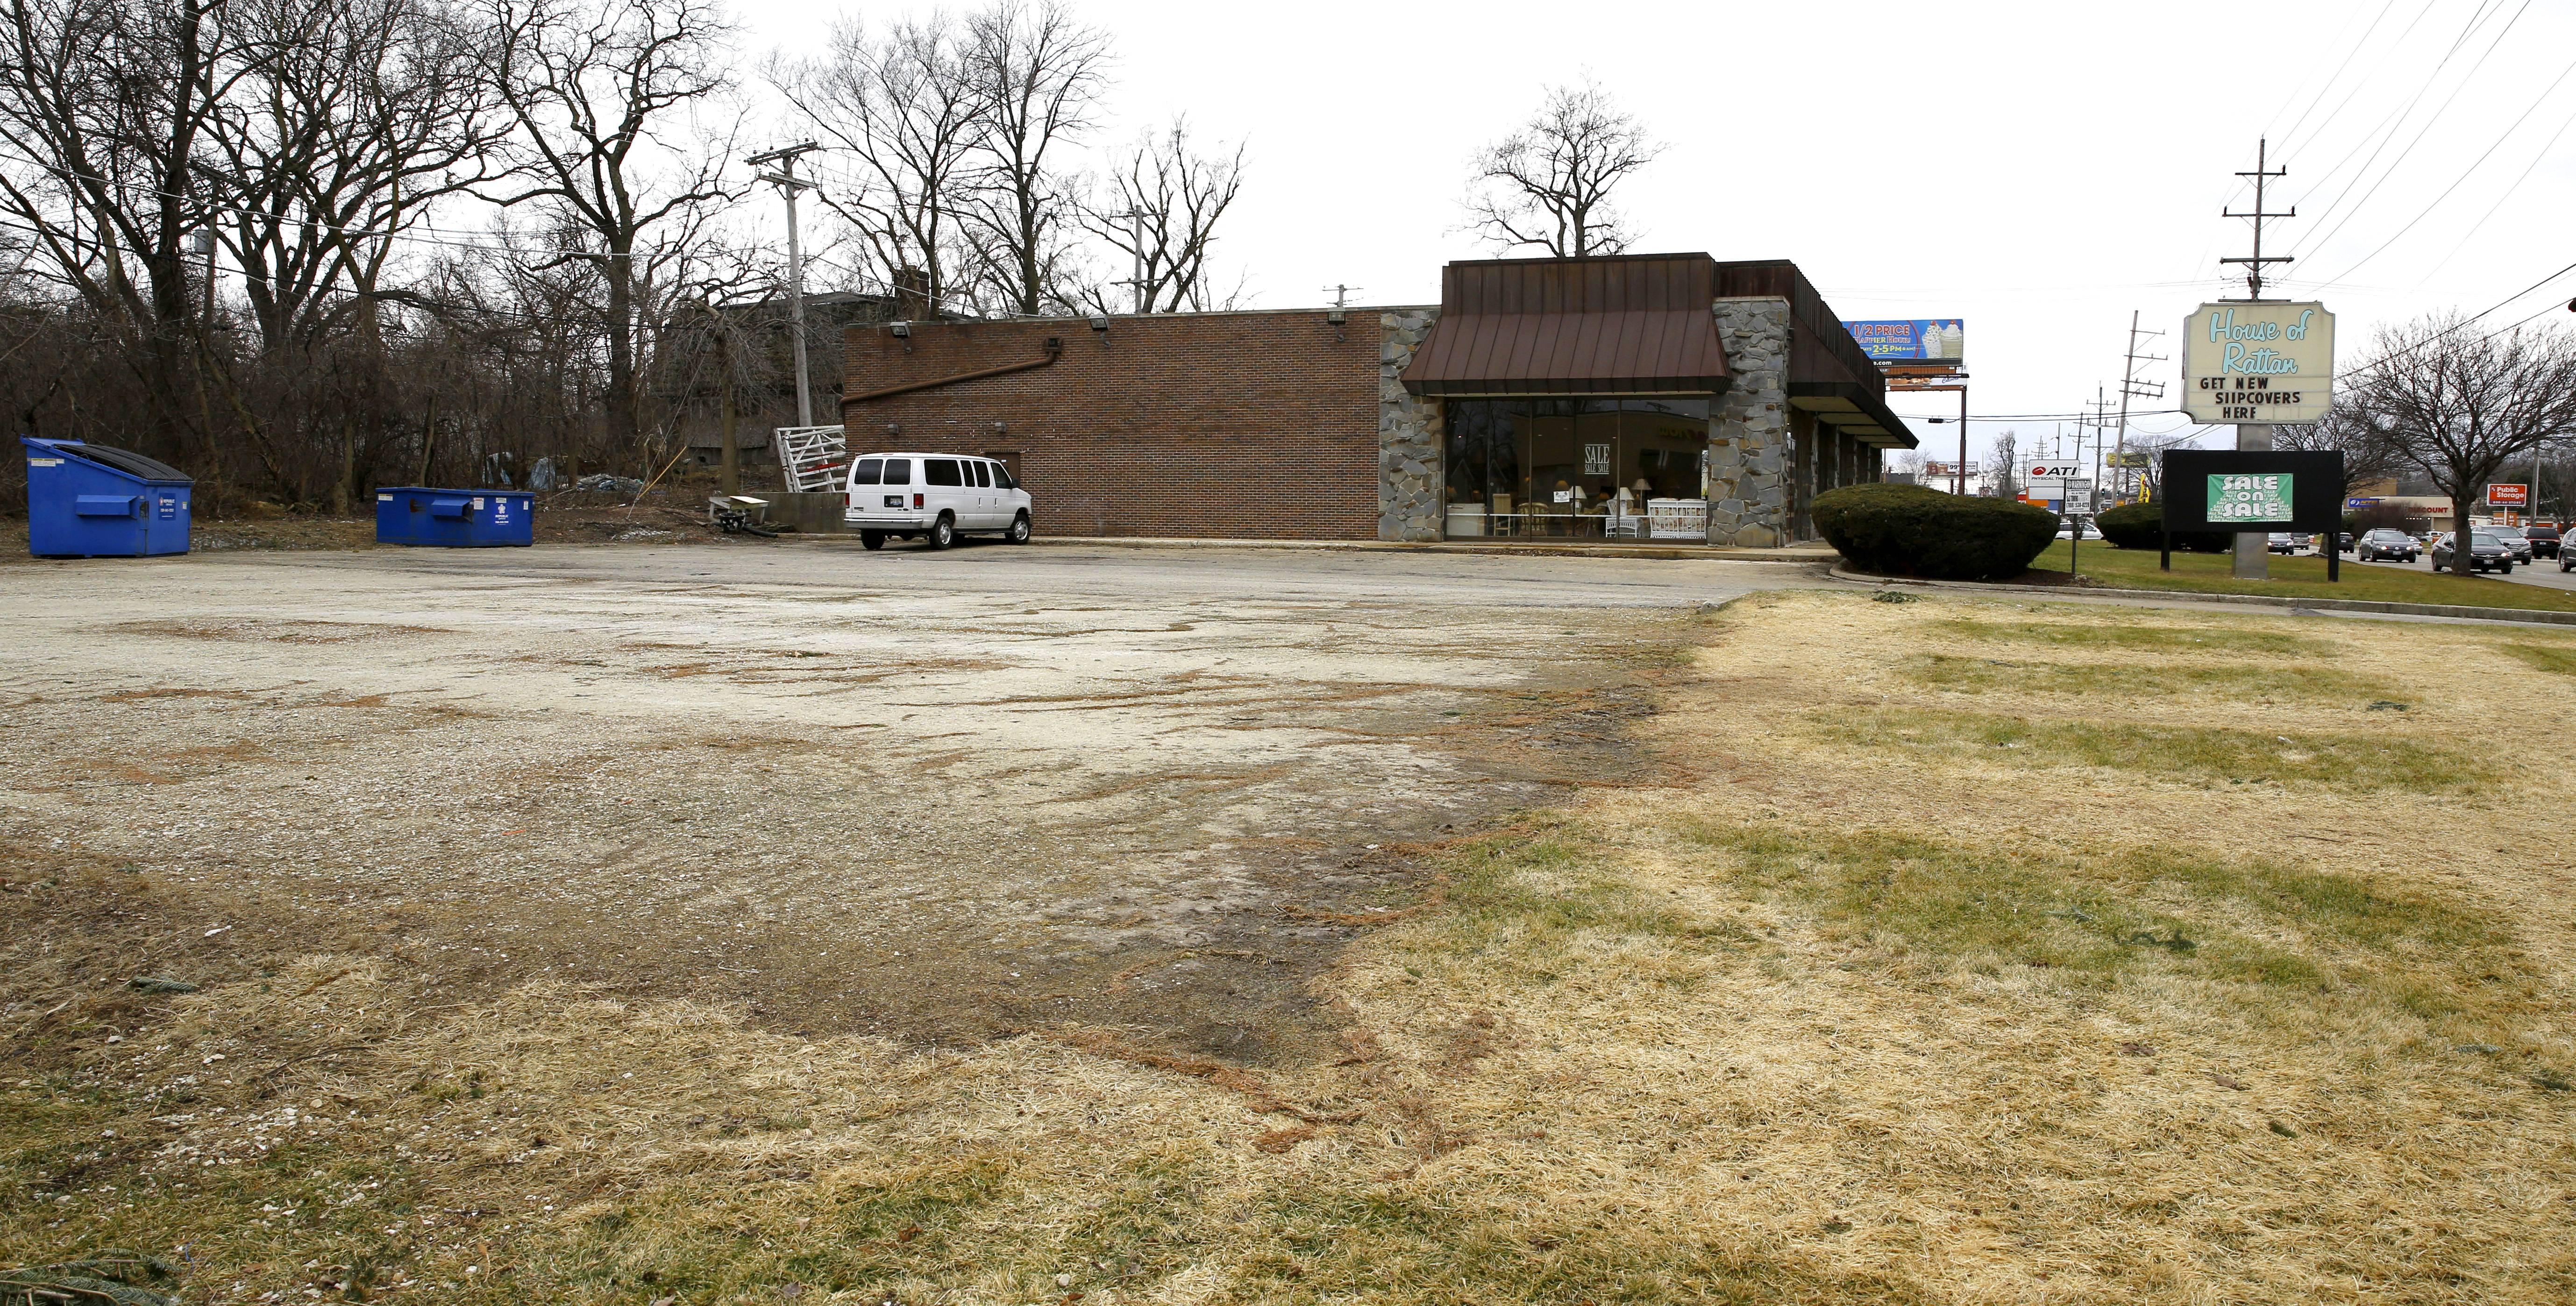 Company abandons plans for gas station near Lombard